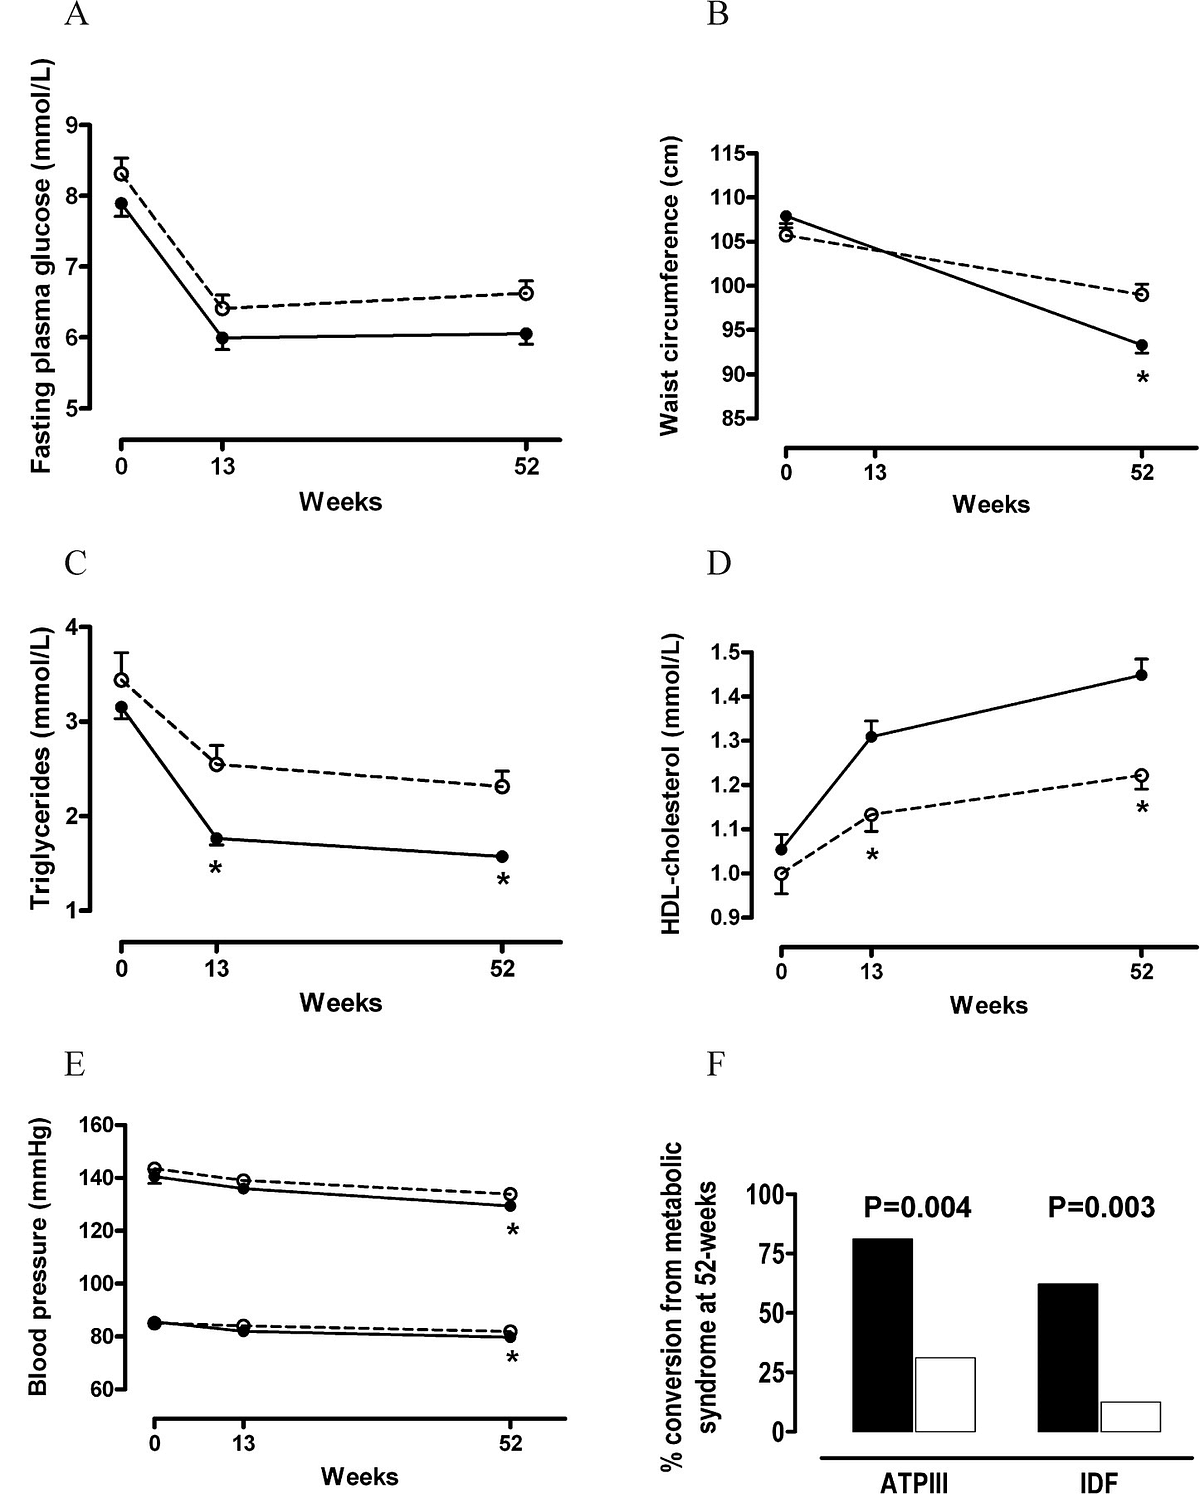 Figure 4 . Features of the metabolic syndrome and metabolic syndrome conversion rate during the period of study. (A)Fasting plasma sugar,(B)waist circumference,(C)triglycerides, (D)high‐density lipoprotein (HDL) cholesterol,(E)systolic and diastolic blood pressure, and(F)metabolic syndrome conversion rate after  52-week treatment with supervised D&E (white circles and white boxes) or in conjunction with transdermal testosterone administration (black circles and black boxes). Data represent mean and SE. ATP III indicates Adult Treatment Panel III; IDF, International Diabetes Federation; * P < .005.